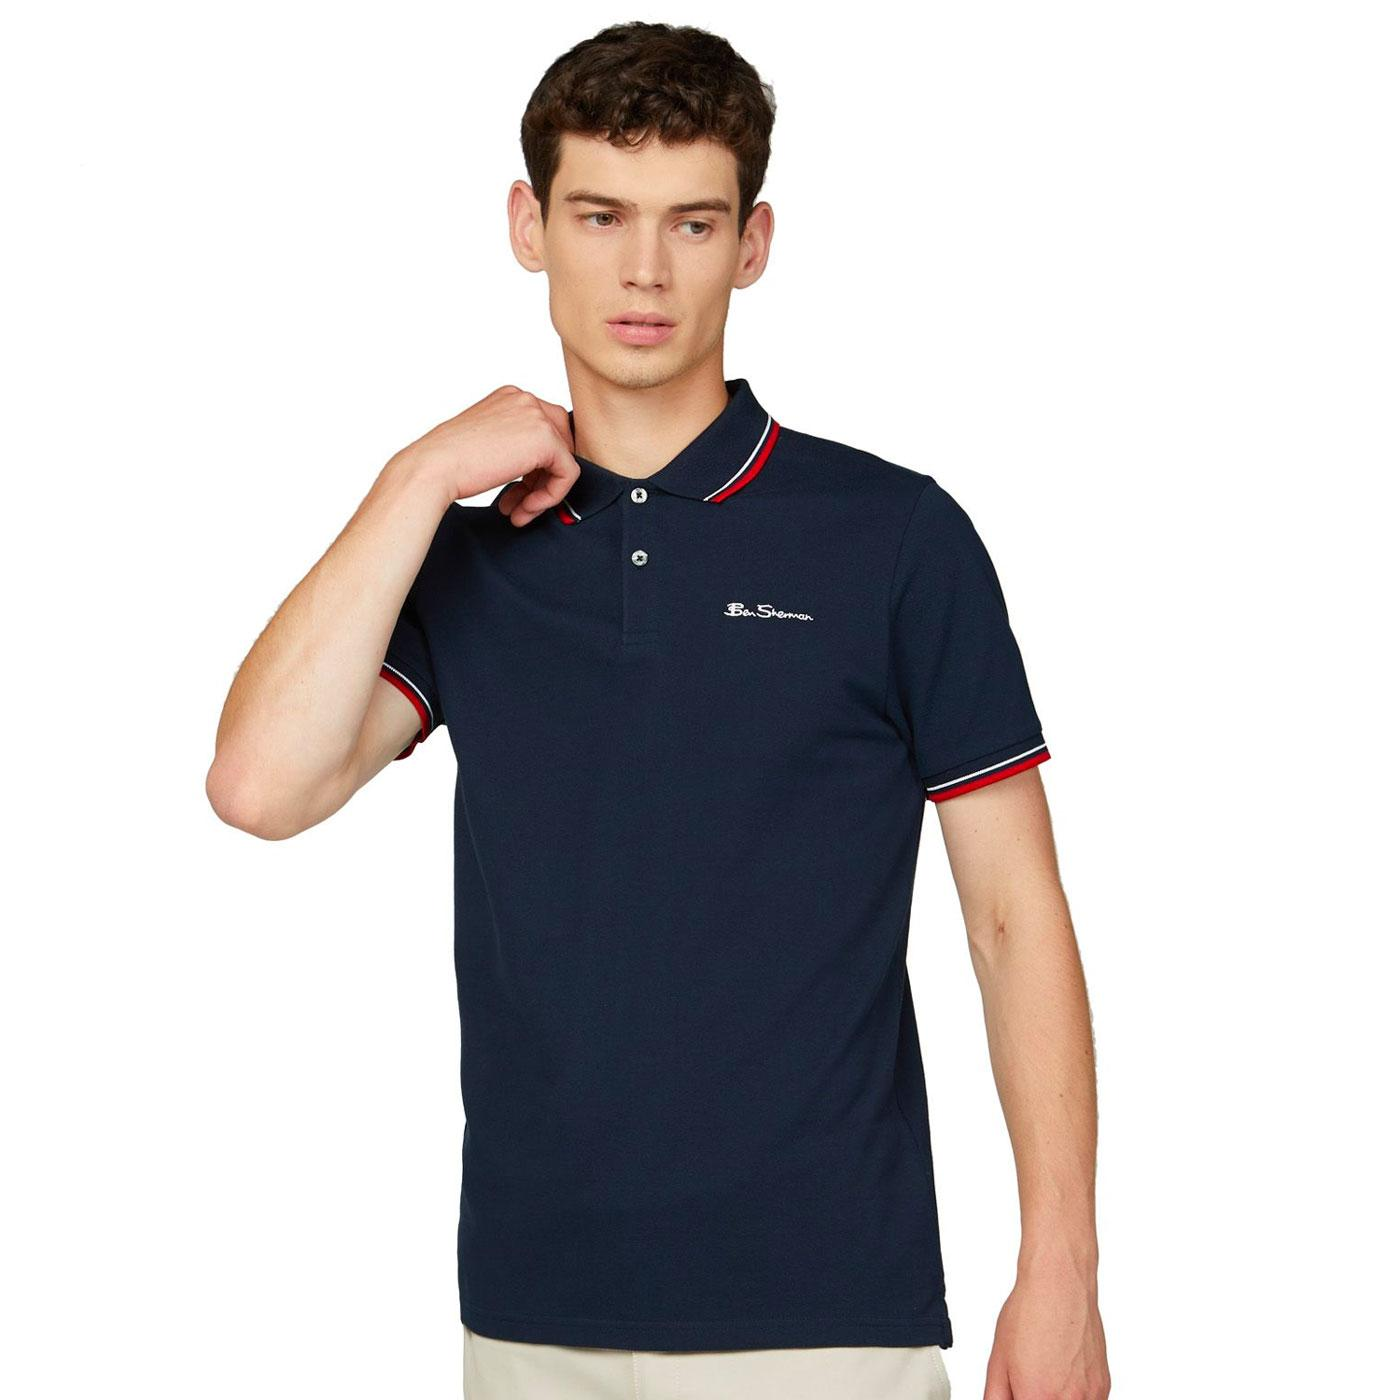 BEN SHERMAN Mod Tipped Signature Polo Top in Navy